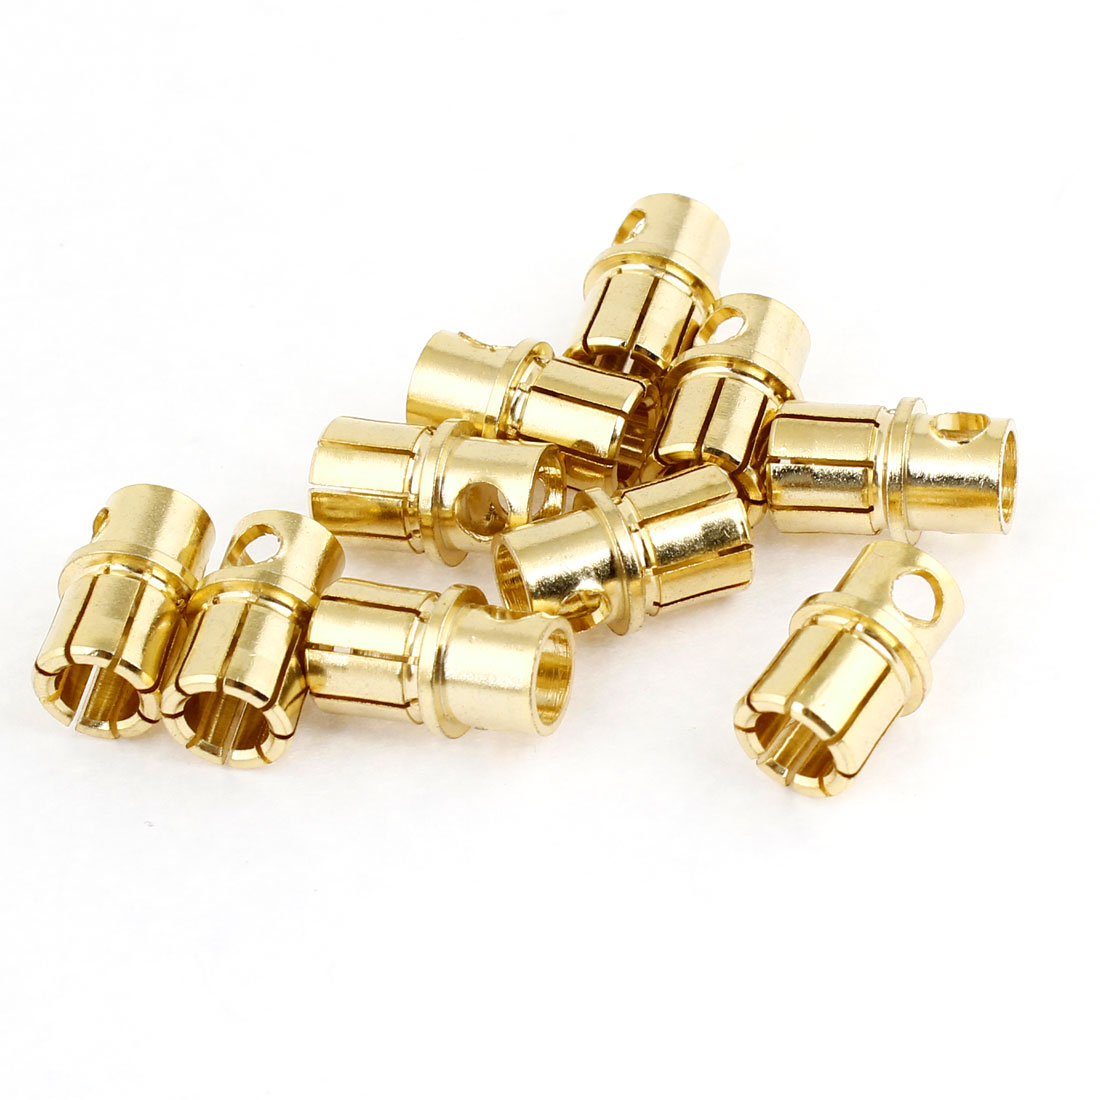 10 Pcs BY502 Gold Tone Metal RC Banana Plug Connector Male 8mm Diameter